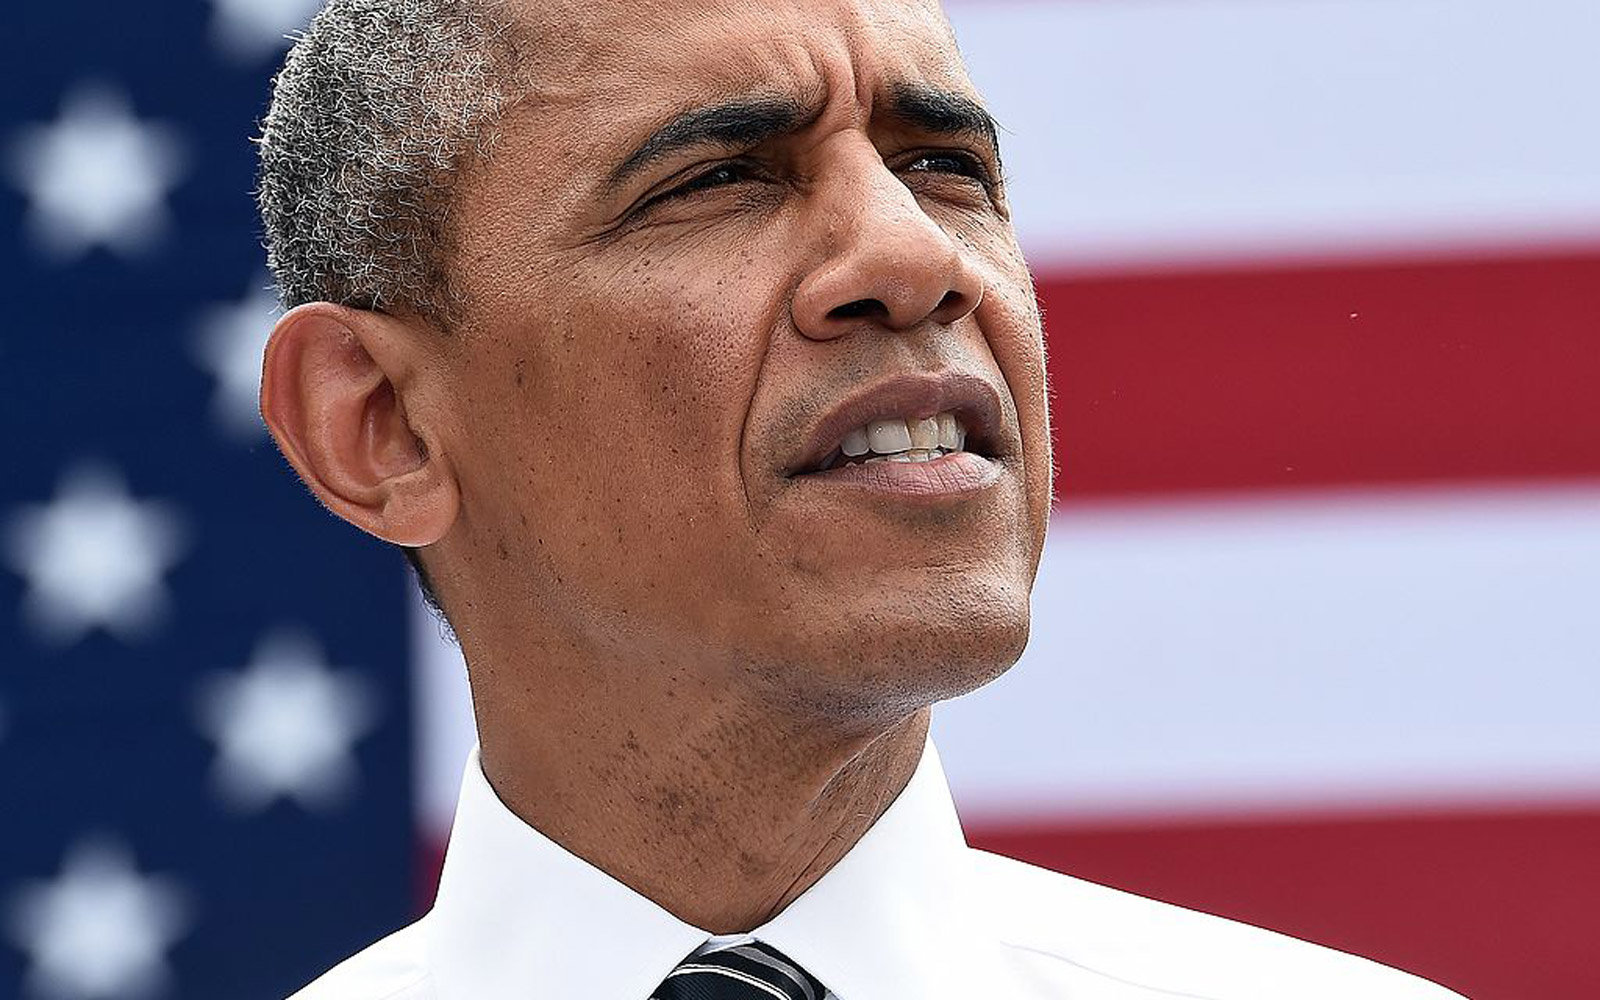 US President Barack Obama speaks on economy at the Turner-Fairbank Highway Research Center in McLean, Virginia, on July 15, 2014. AFP PHOTO/Jewel Samad        (Photo credit should read JEWEL SAMAD/AFP/Getty Images)